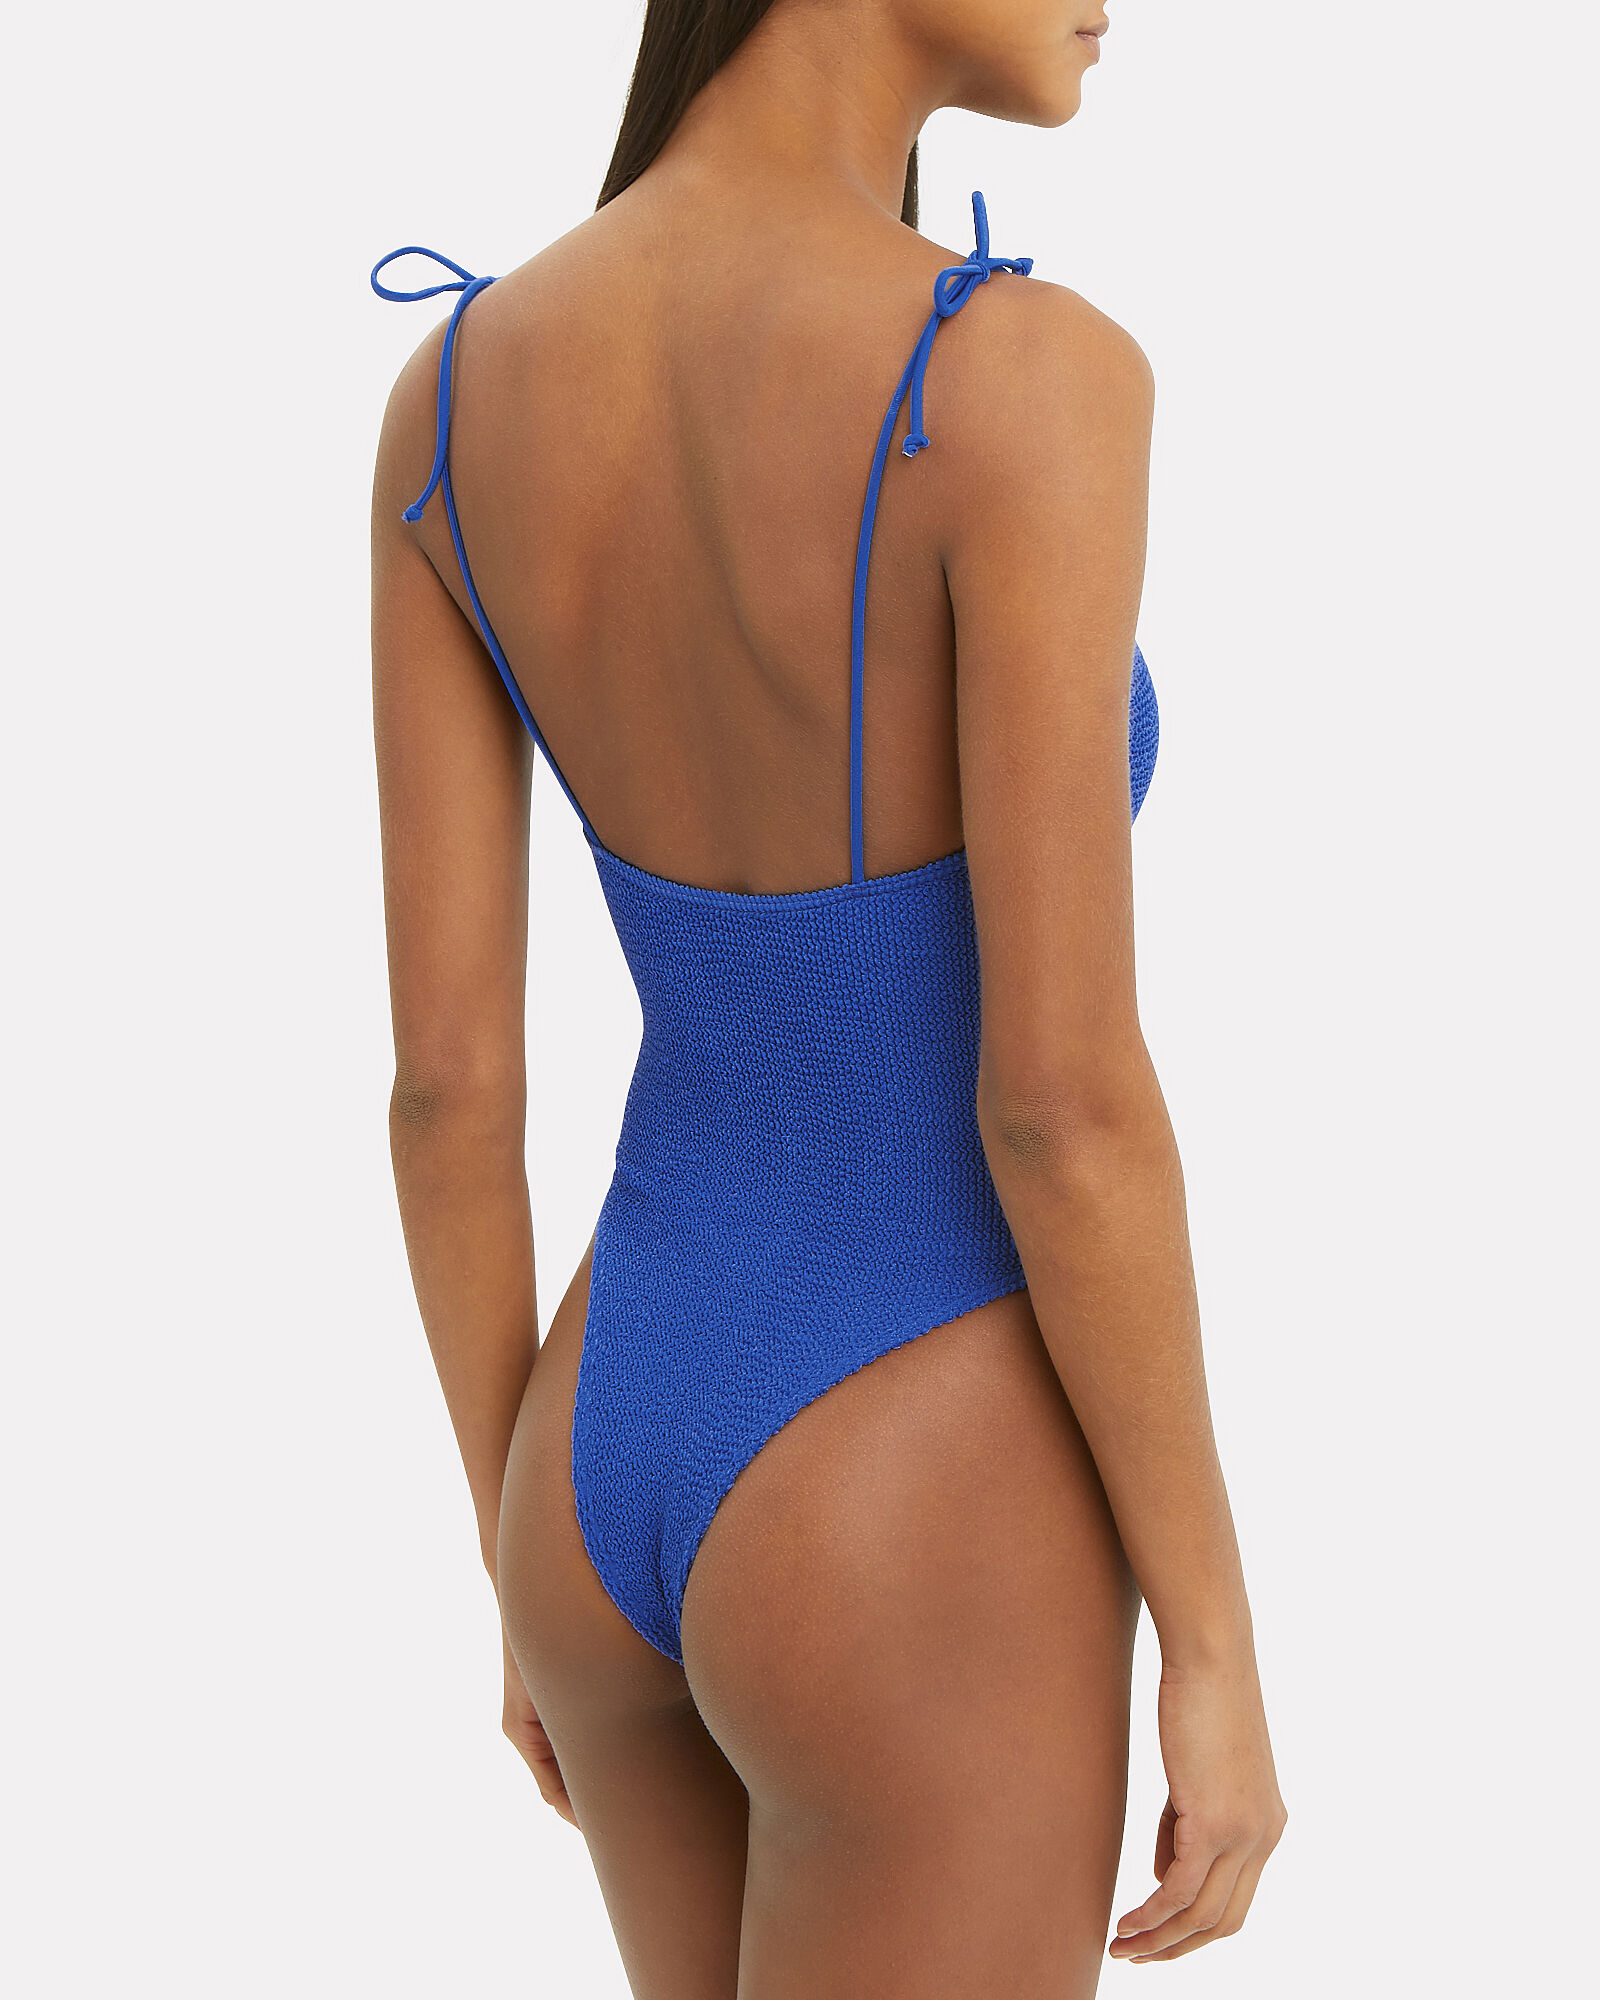 Micki One Piece Swimsuit, CERULEAN, hi-res